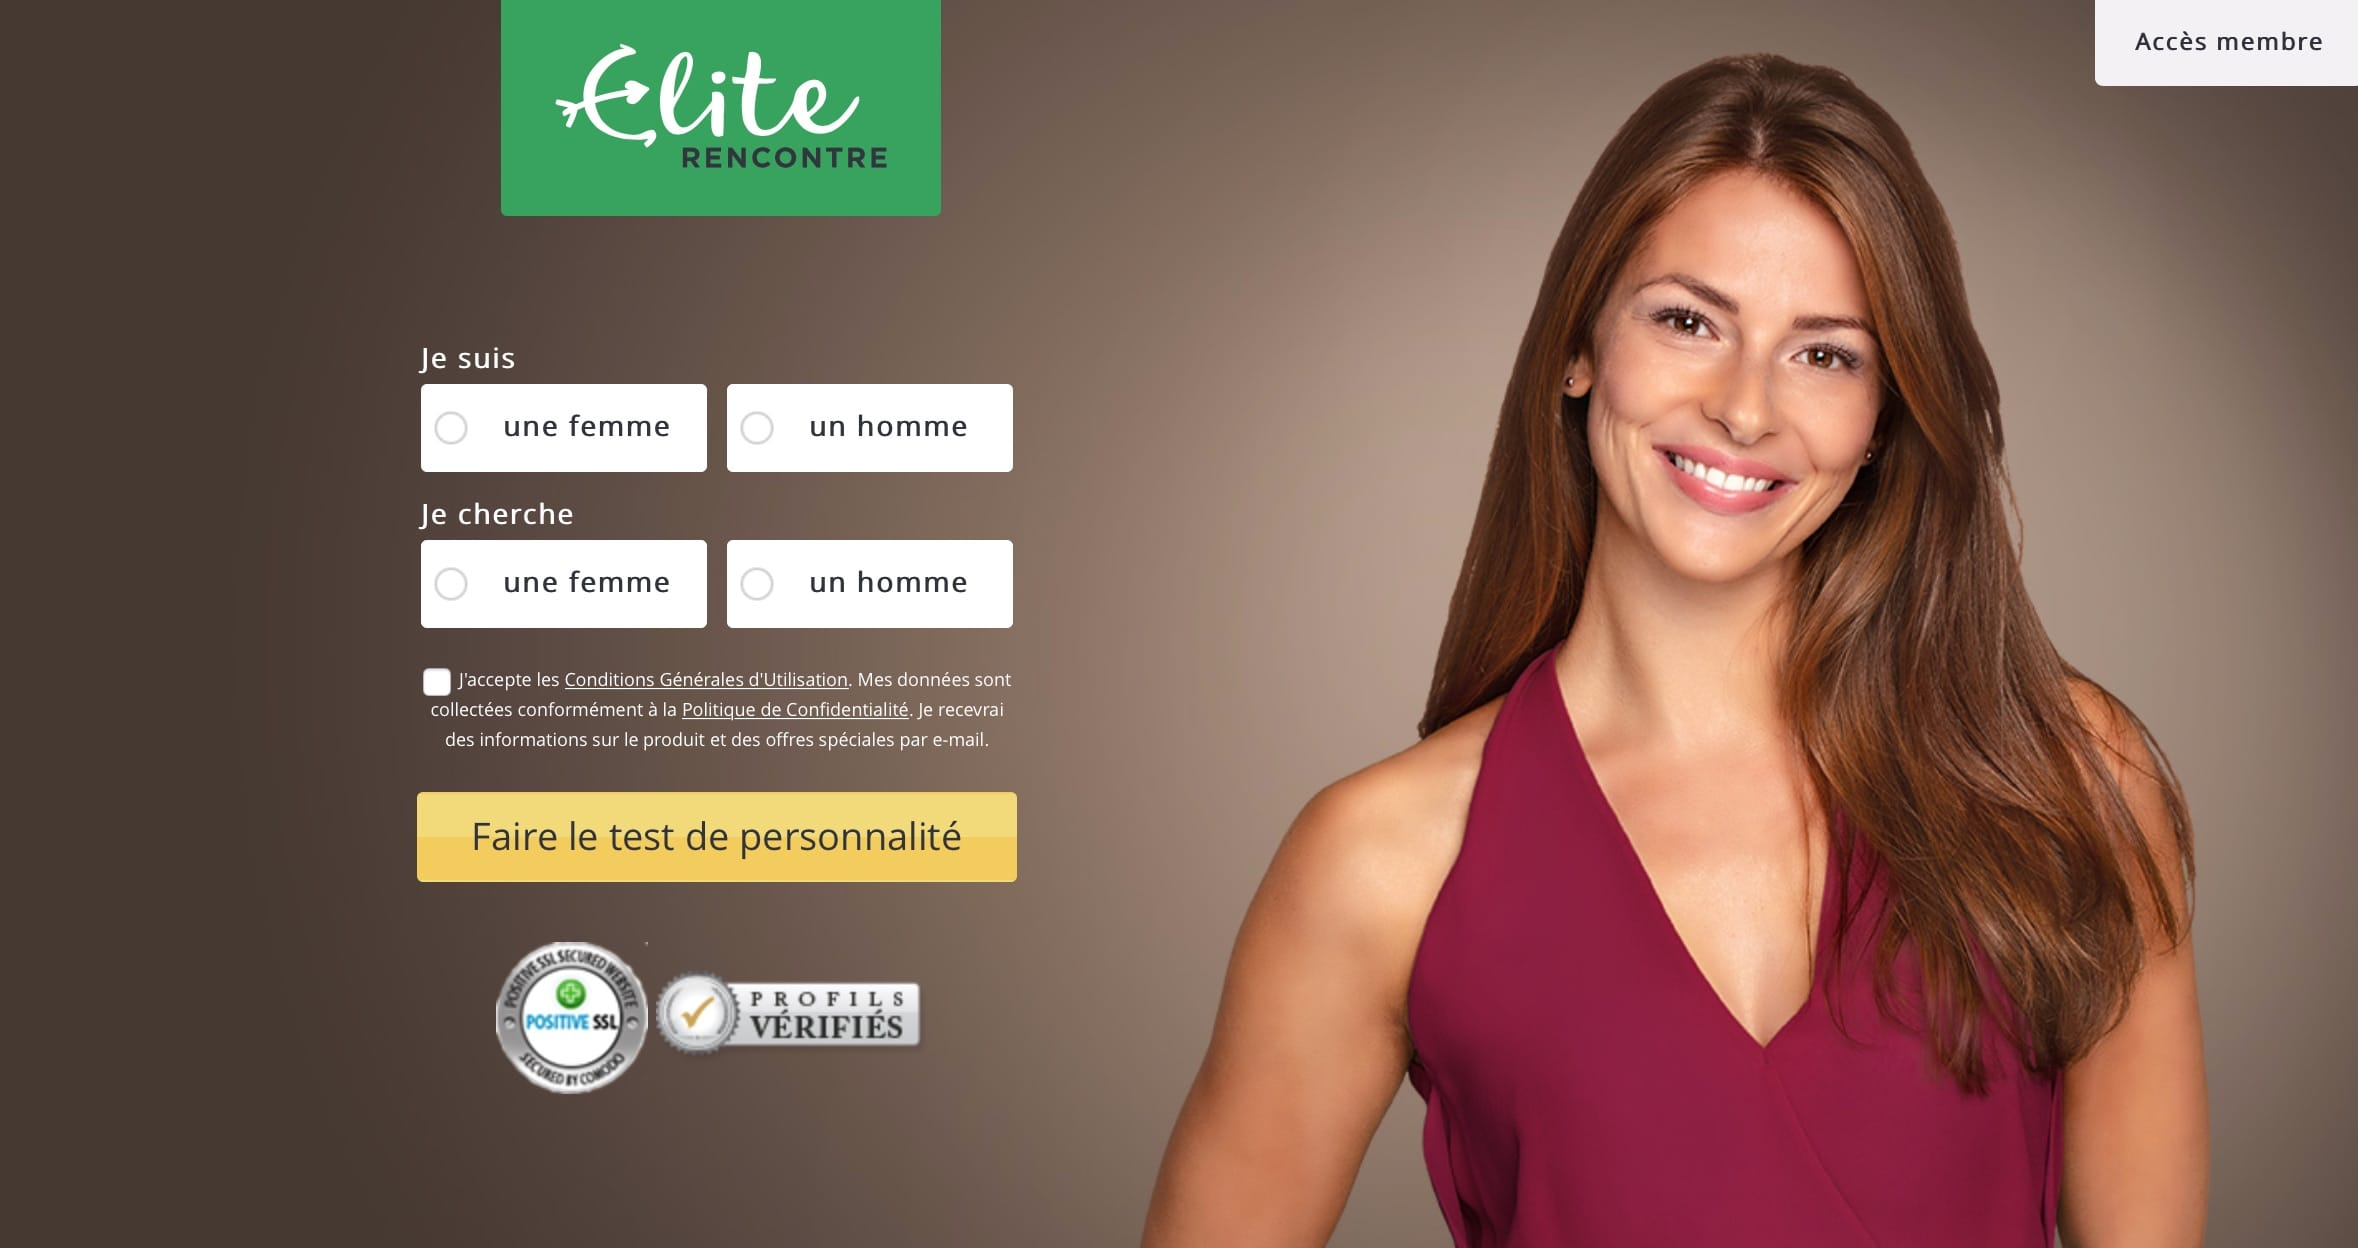 elite rencontre femme site de rencontre opinion